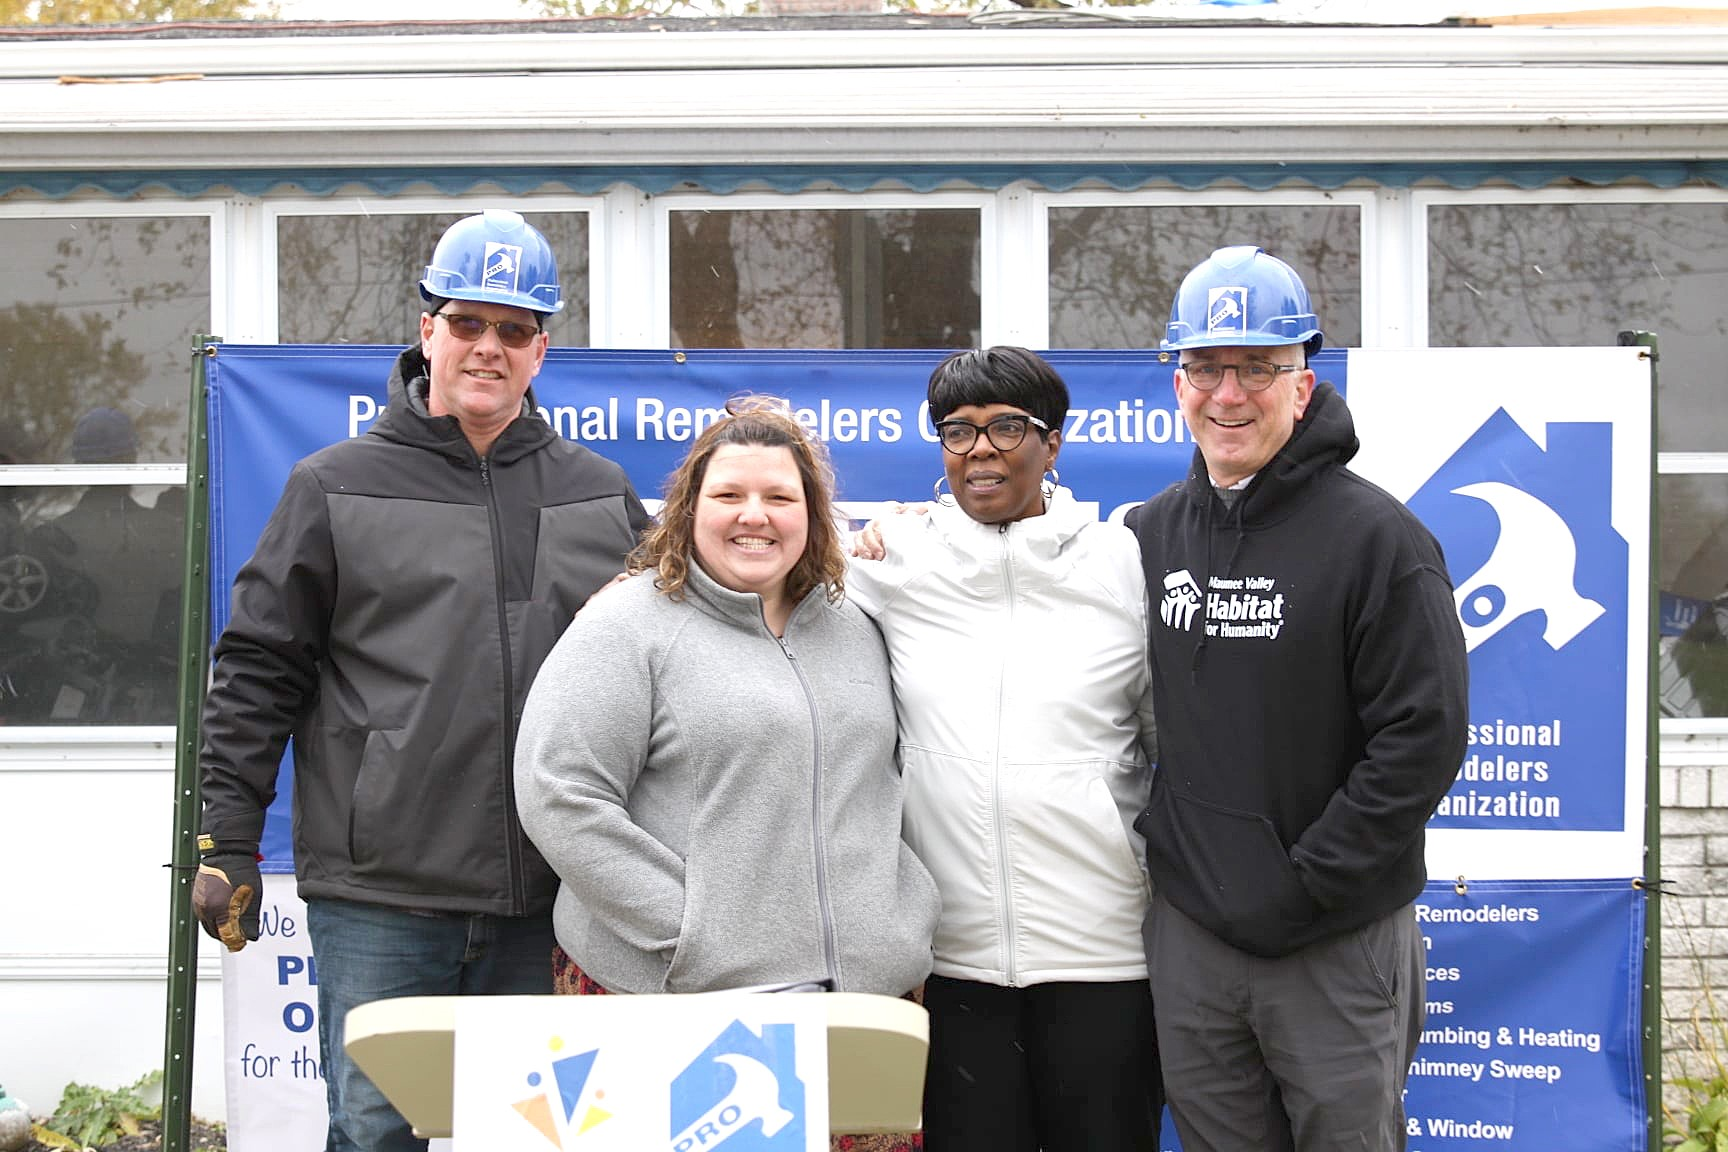 Scott Hinz, PRO president; Malori McCloskey, foster parent; Robin Reese, Lucas County Children Services director; Michael McIntyre, Maumee Valley Habitat for Humanity executive director. (Submitted photo)